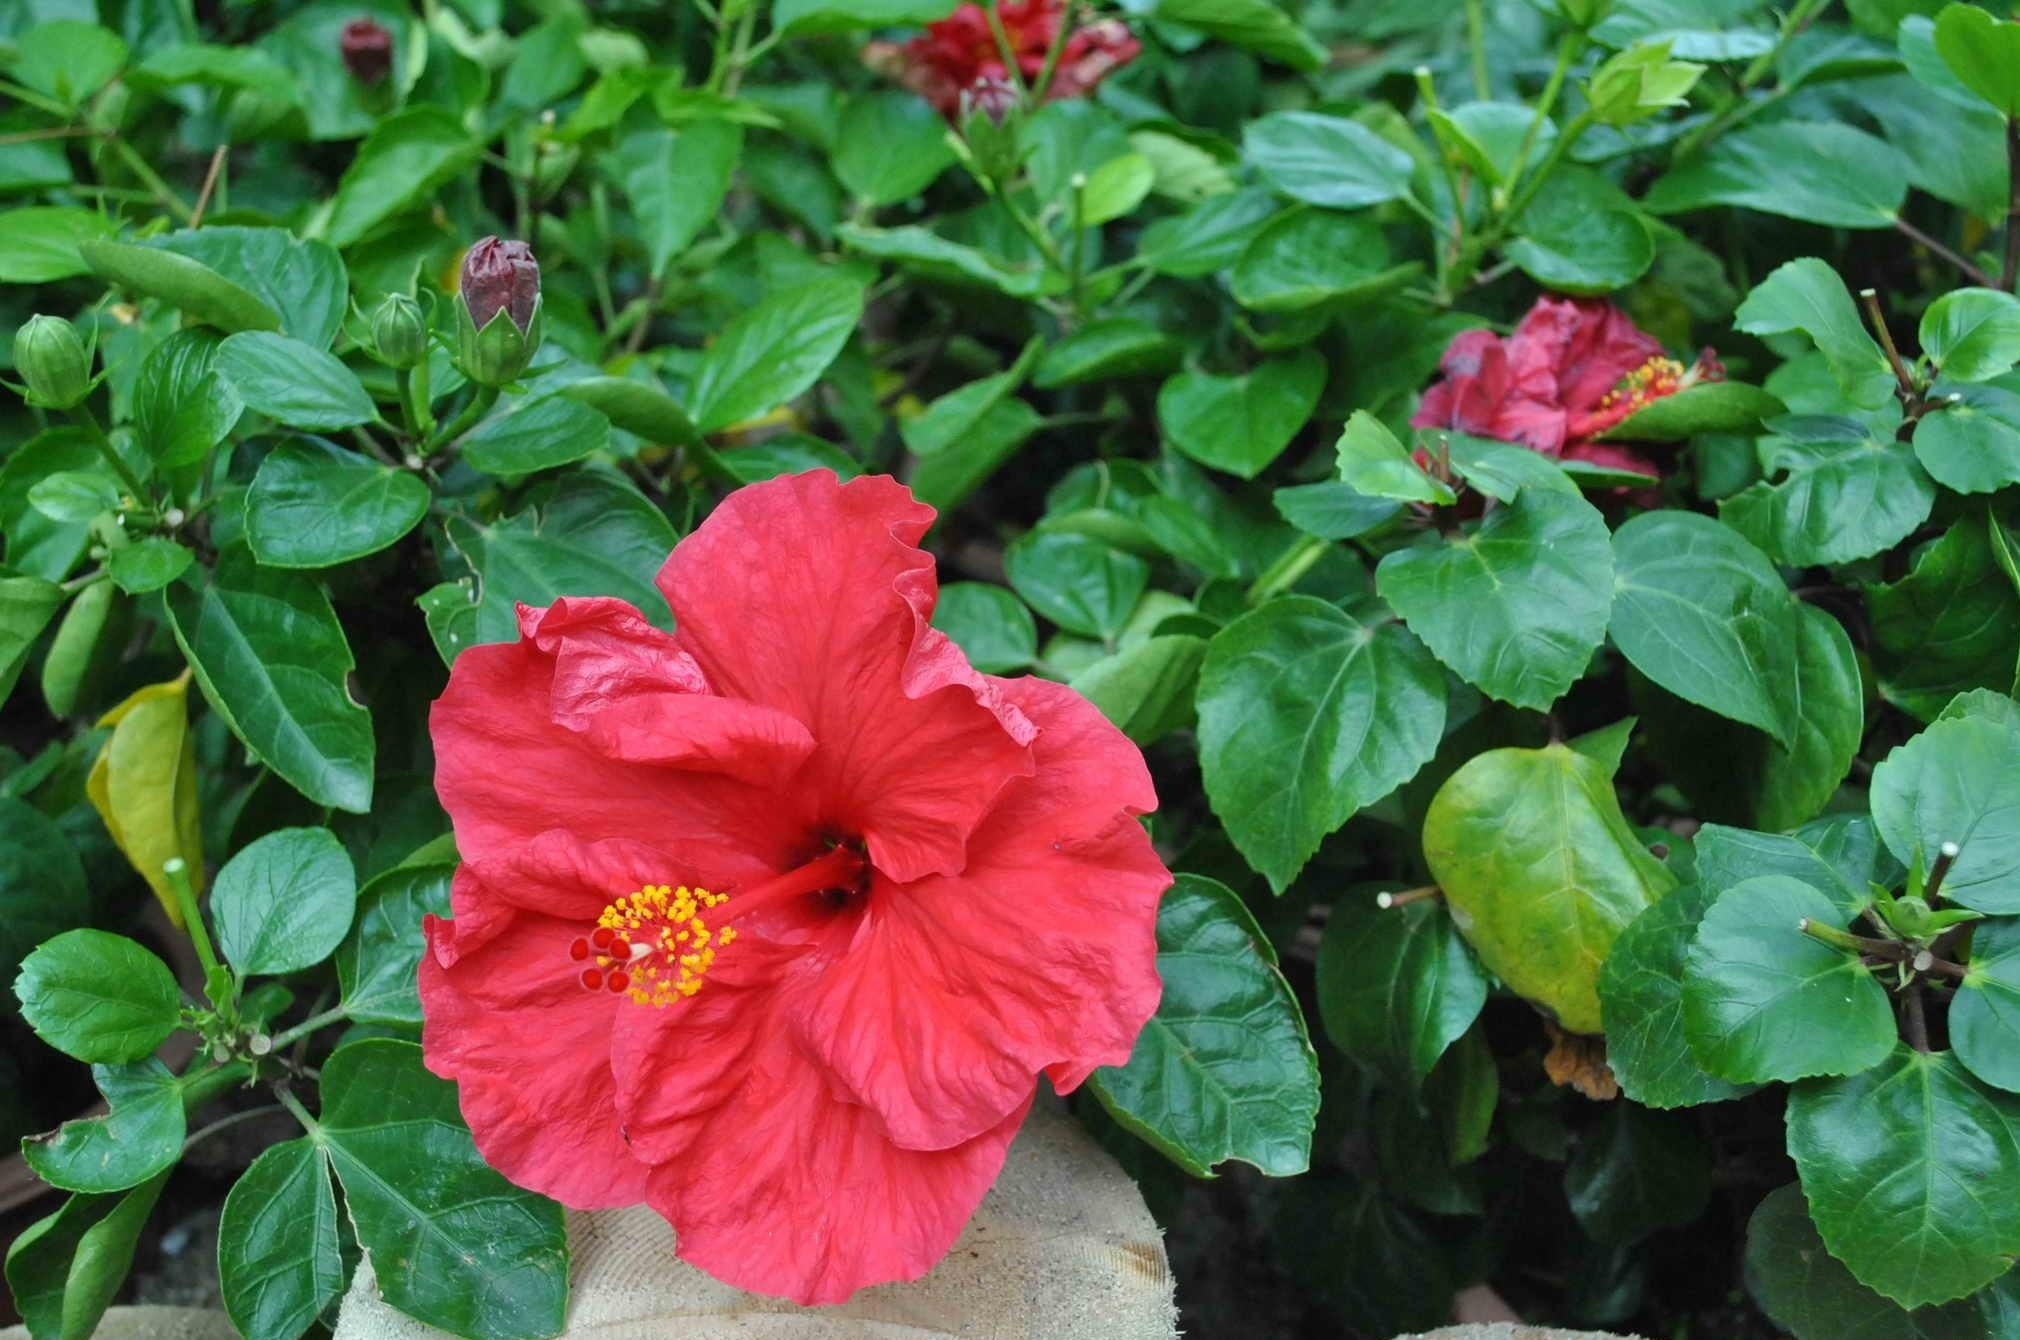 132633 download wallpaper Flowers, Hibiscus, Bloom, Flowering, Buds, Greens, Leaves screensavers and pictures for free